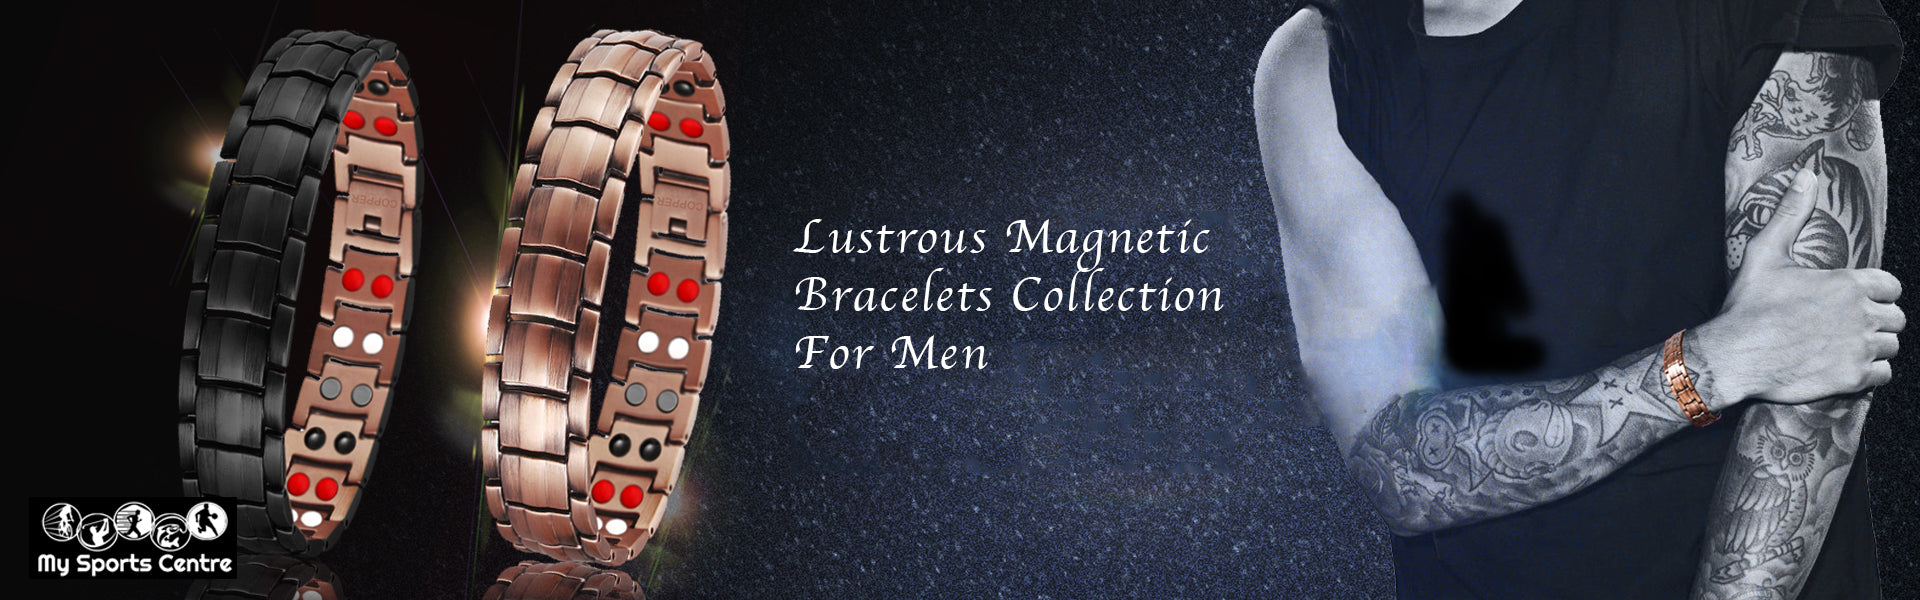 Magnetic Bracelets Collection For Men